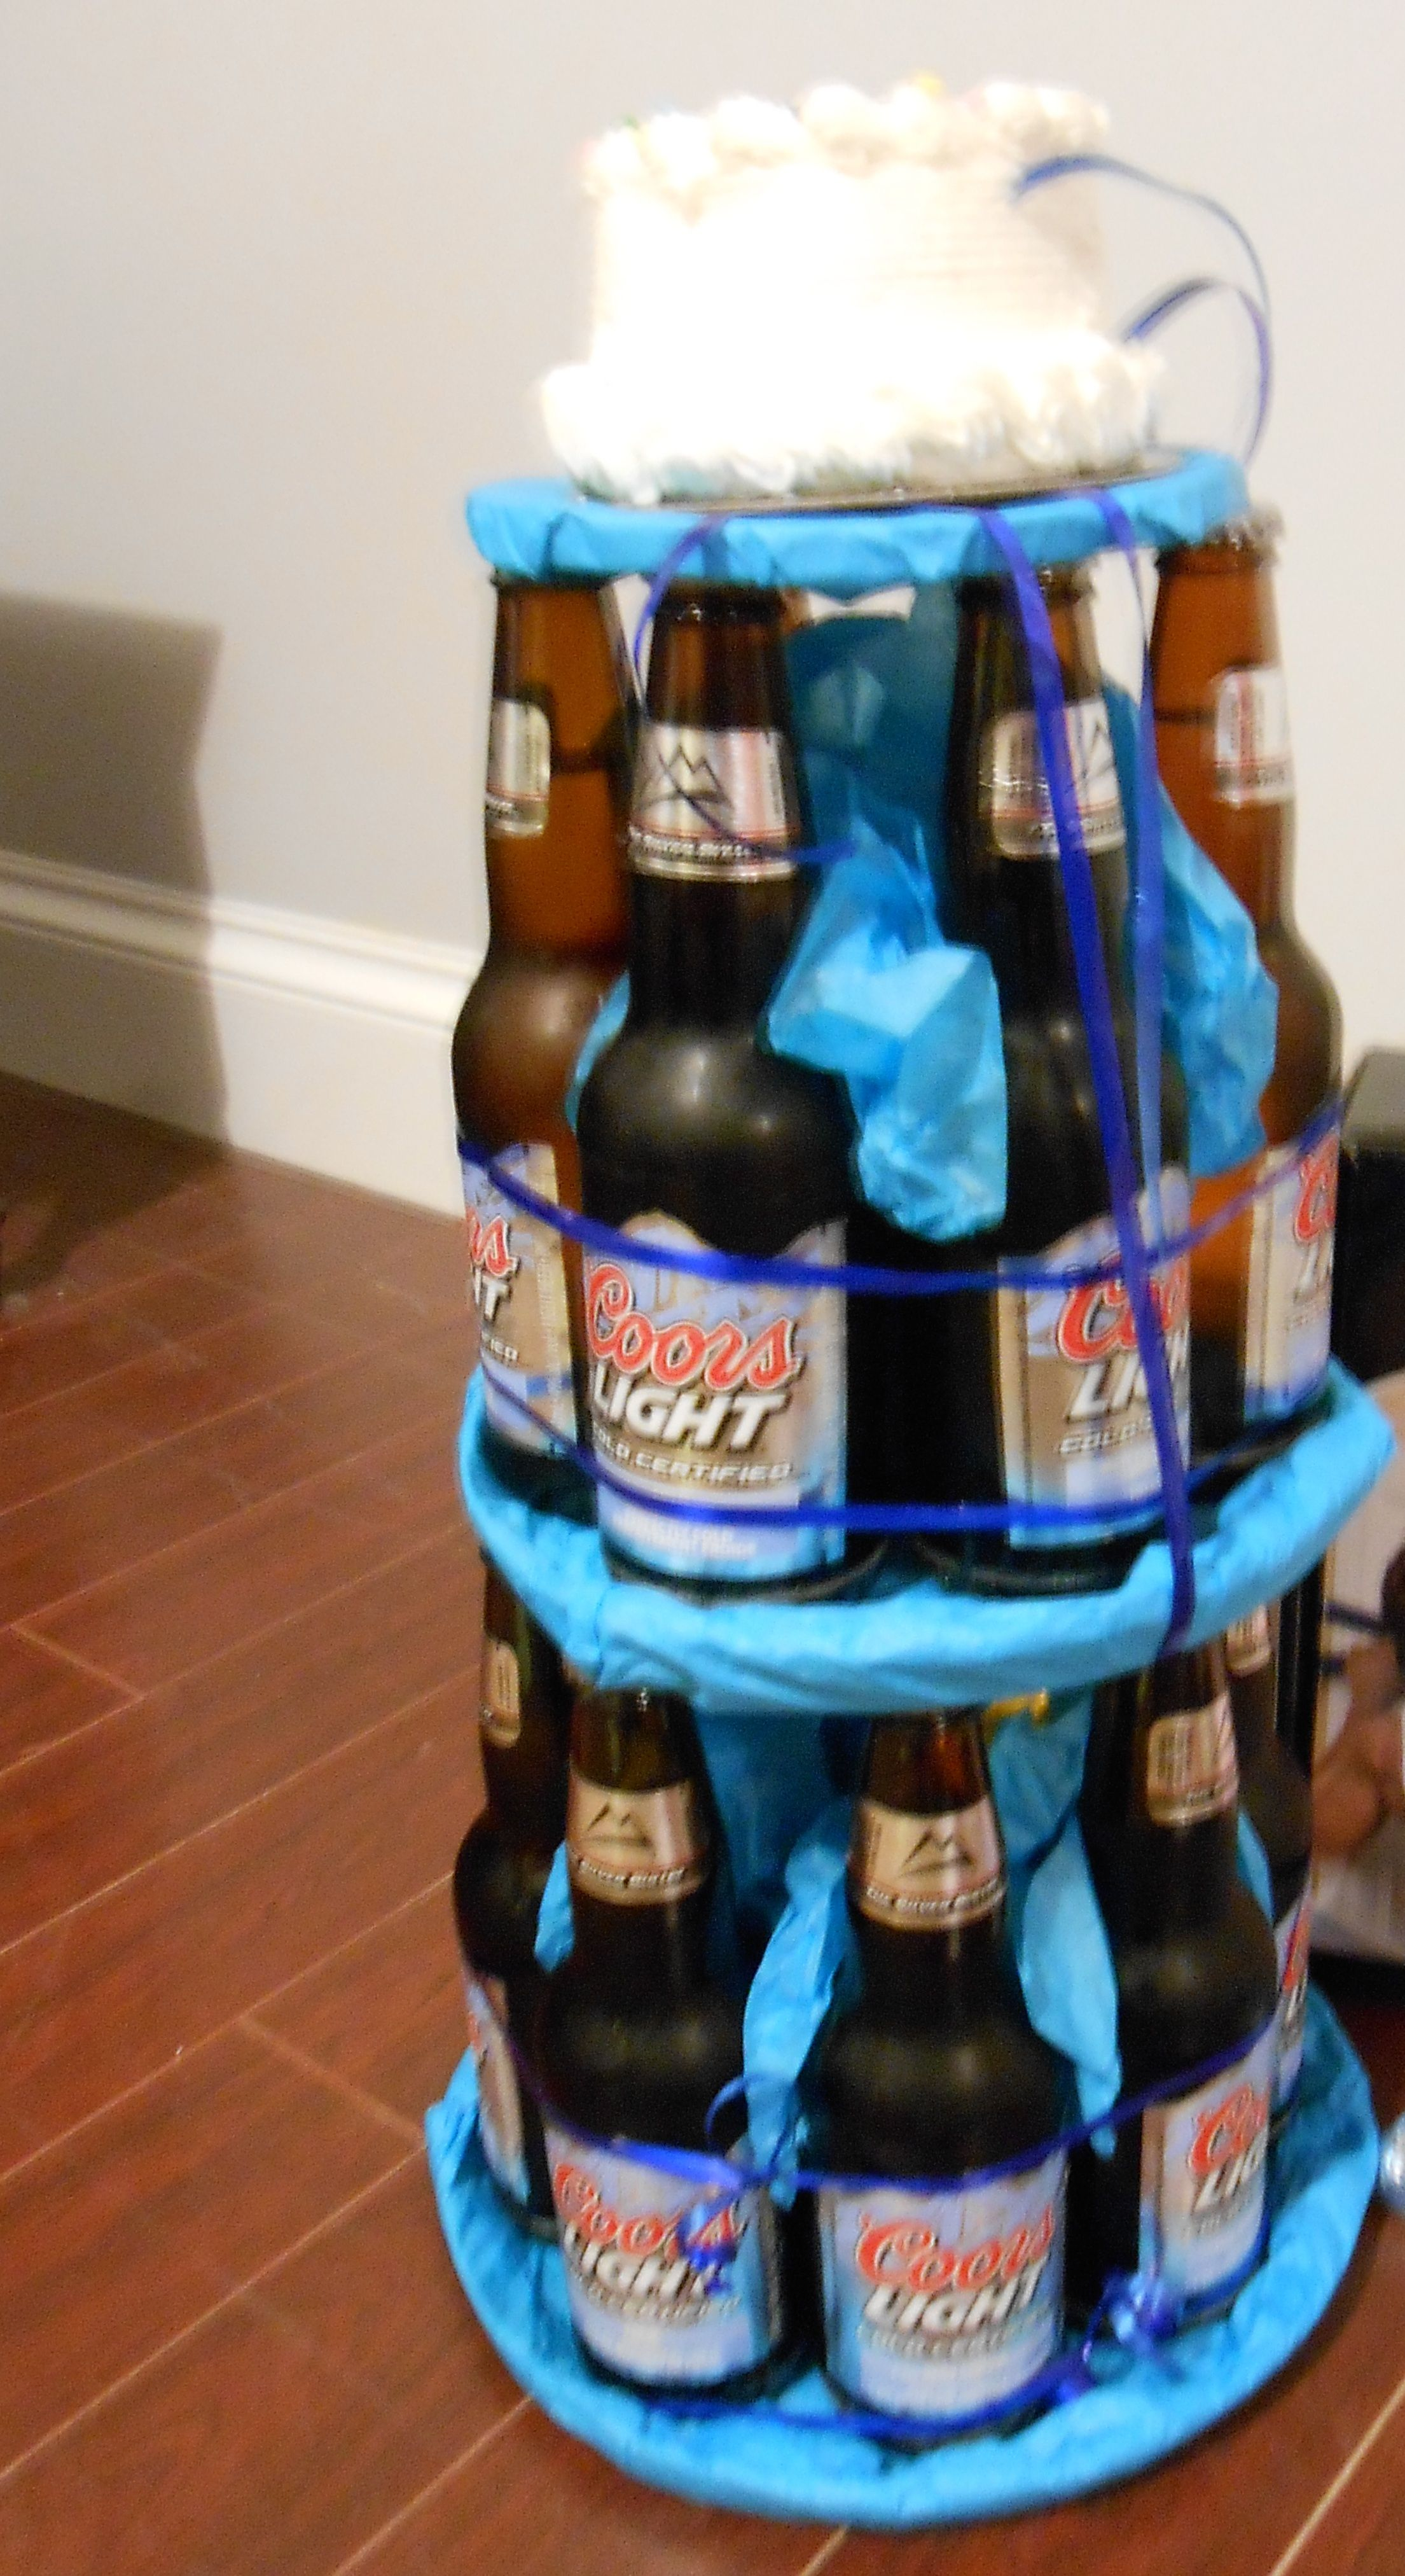 Beer Cake Idea Wrapped With Ribbons And Topped With A